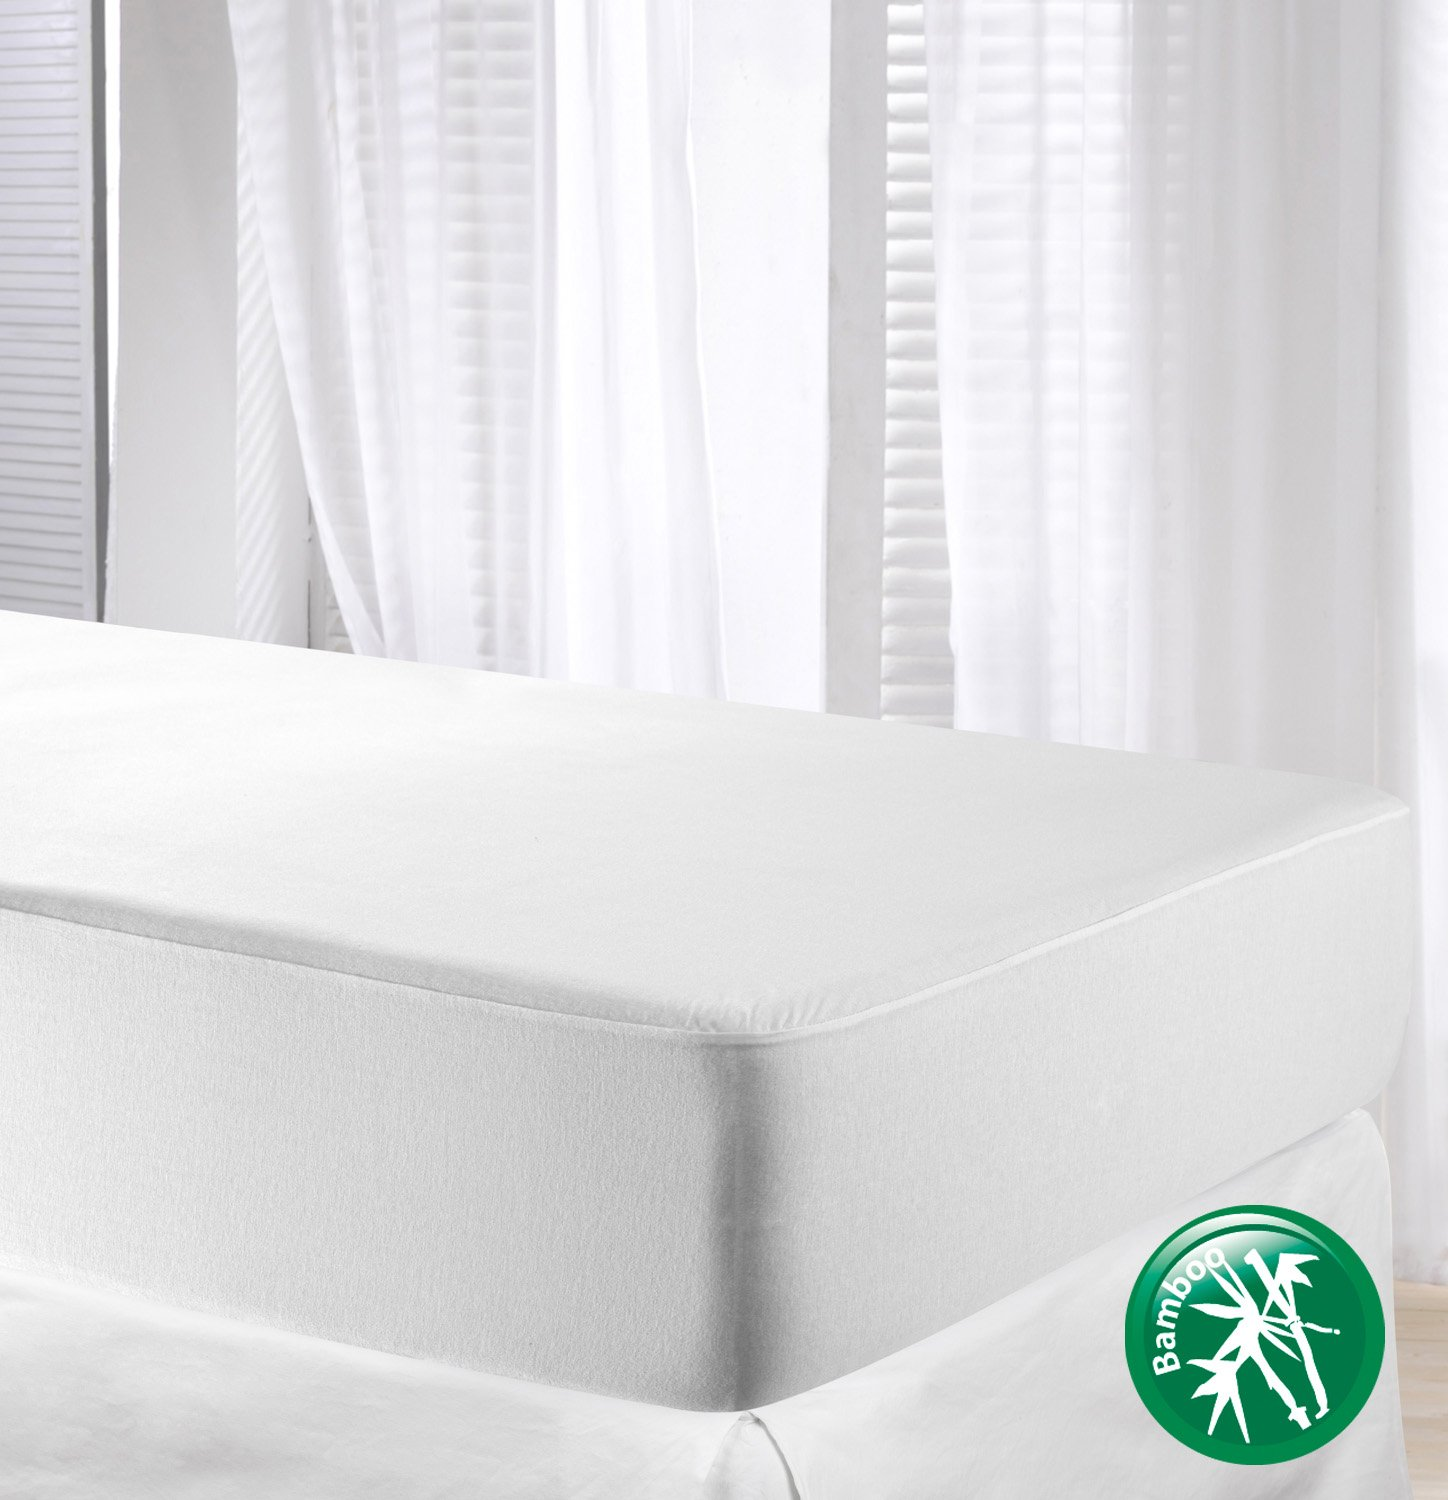 lifestyle australia ardor mattress home topper bamboo image